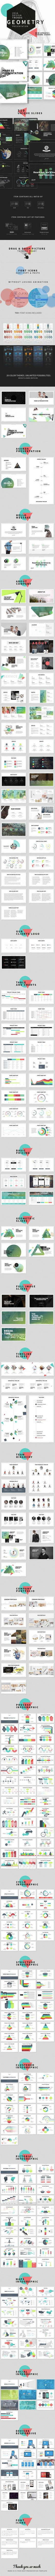 MARK03-Powerpoint Template